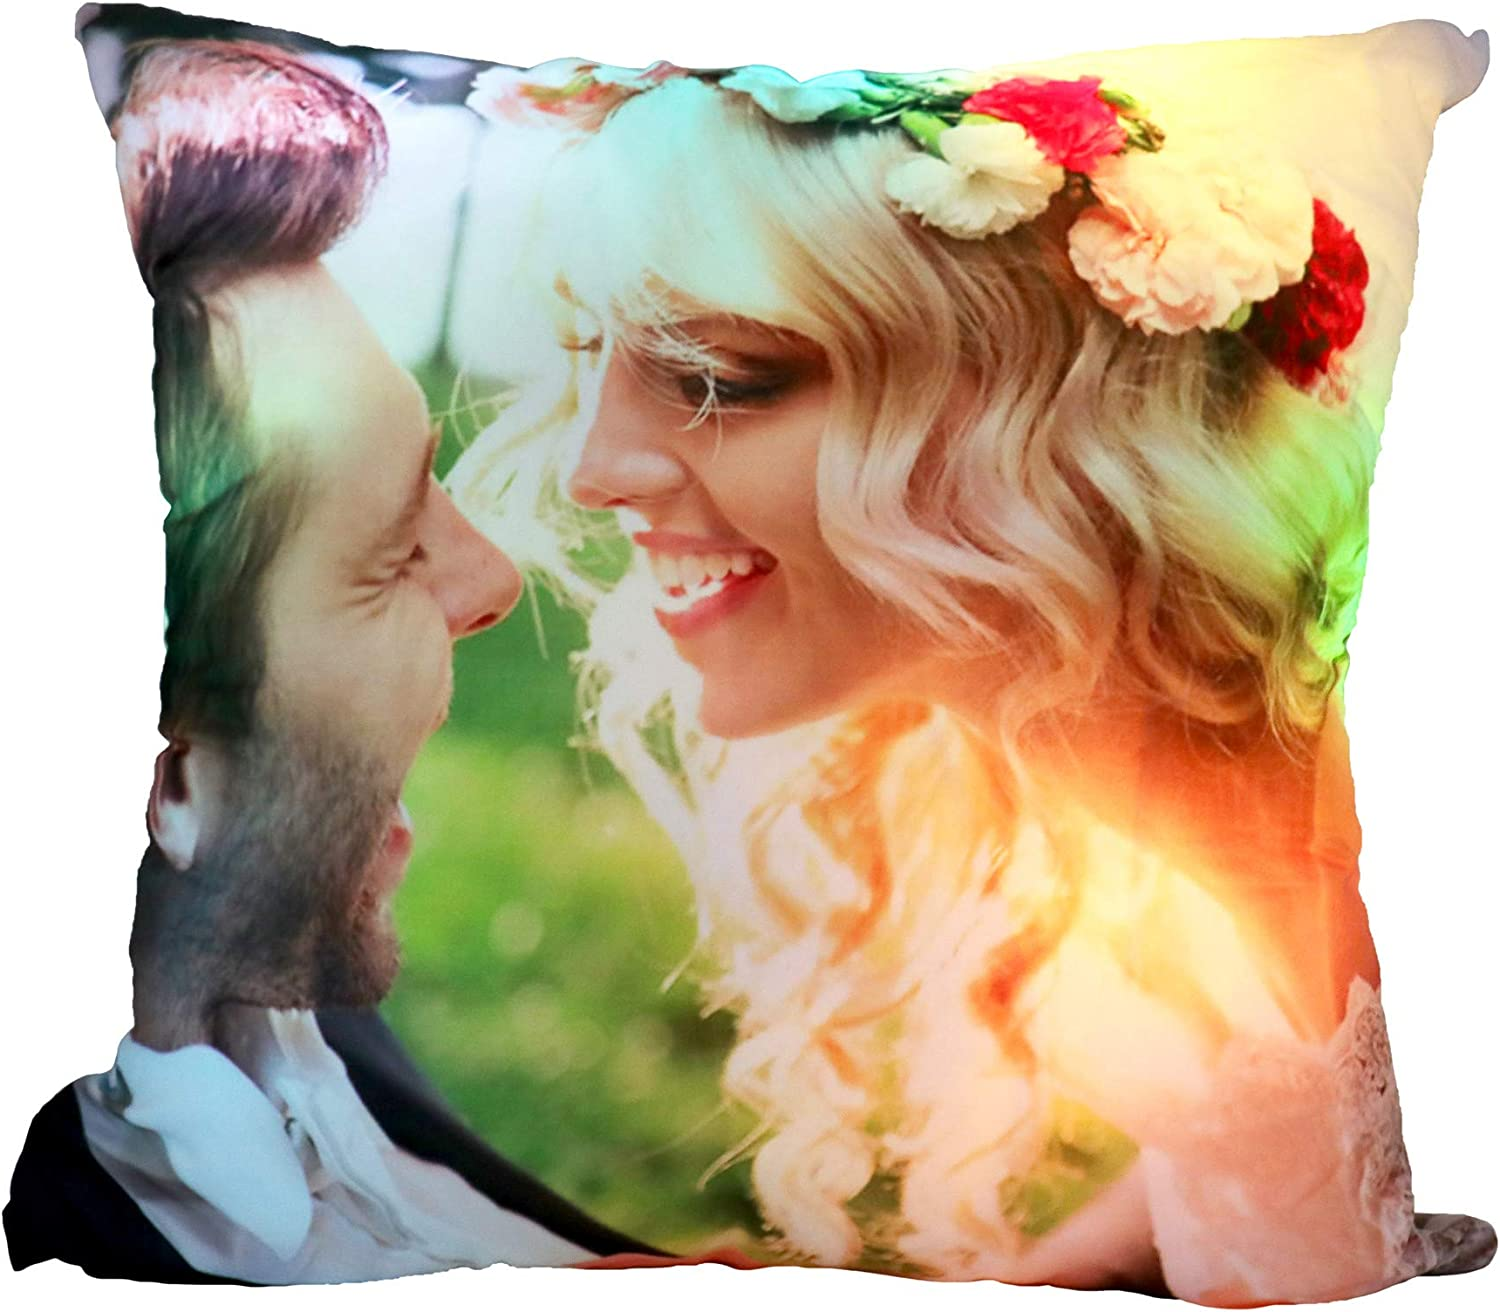 Personalized Light Up Outlet SALE Glowing LED P Pillow Photo Custom Max 56% OFF Luminous